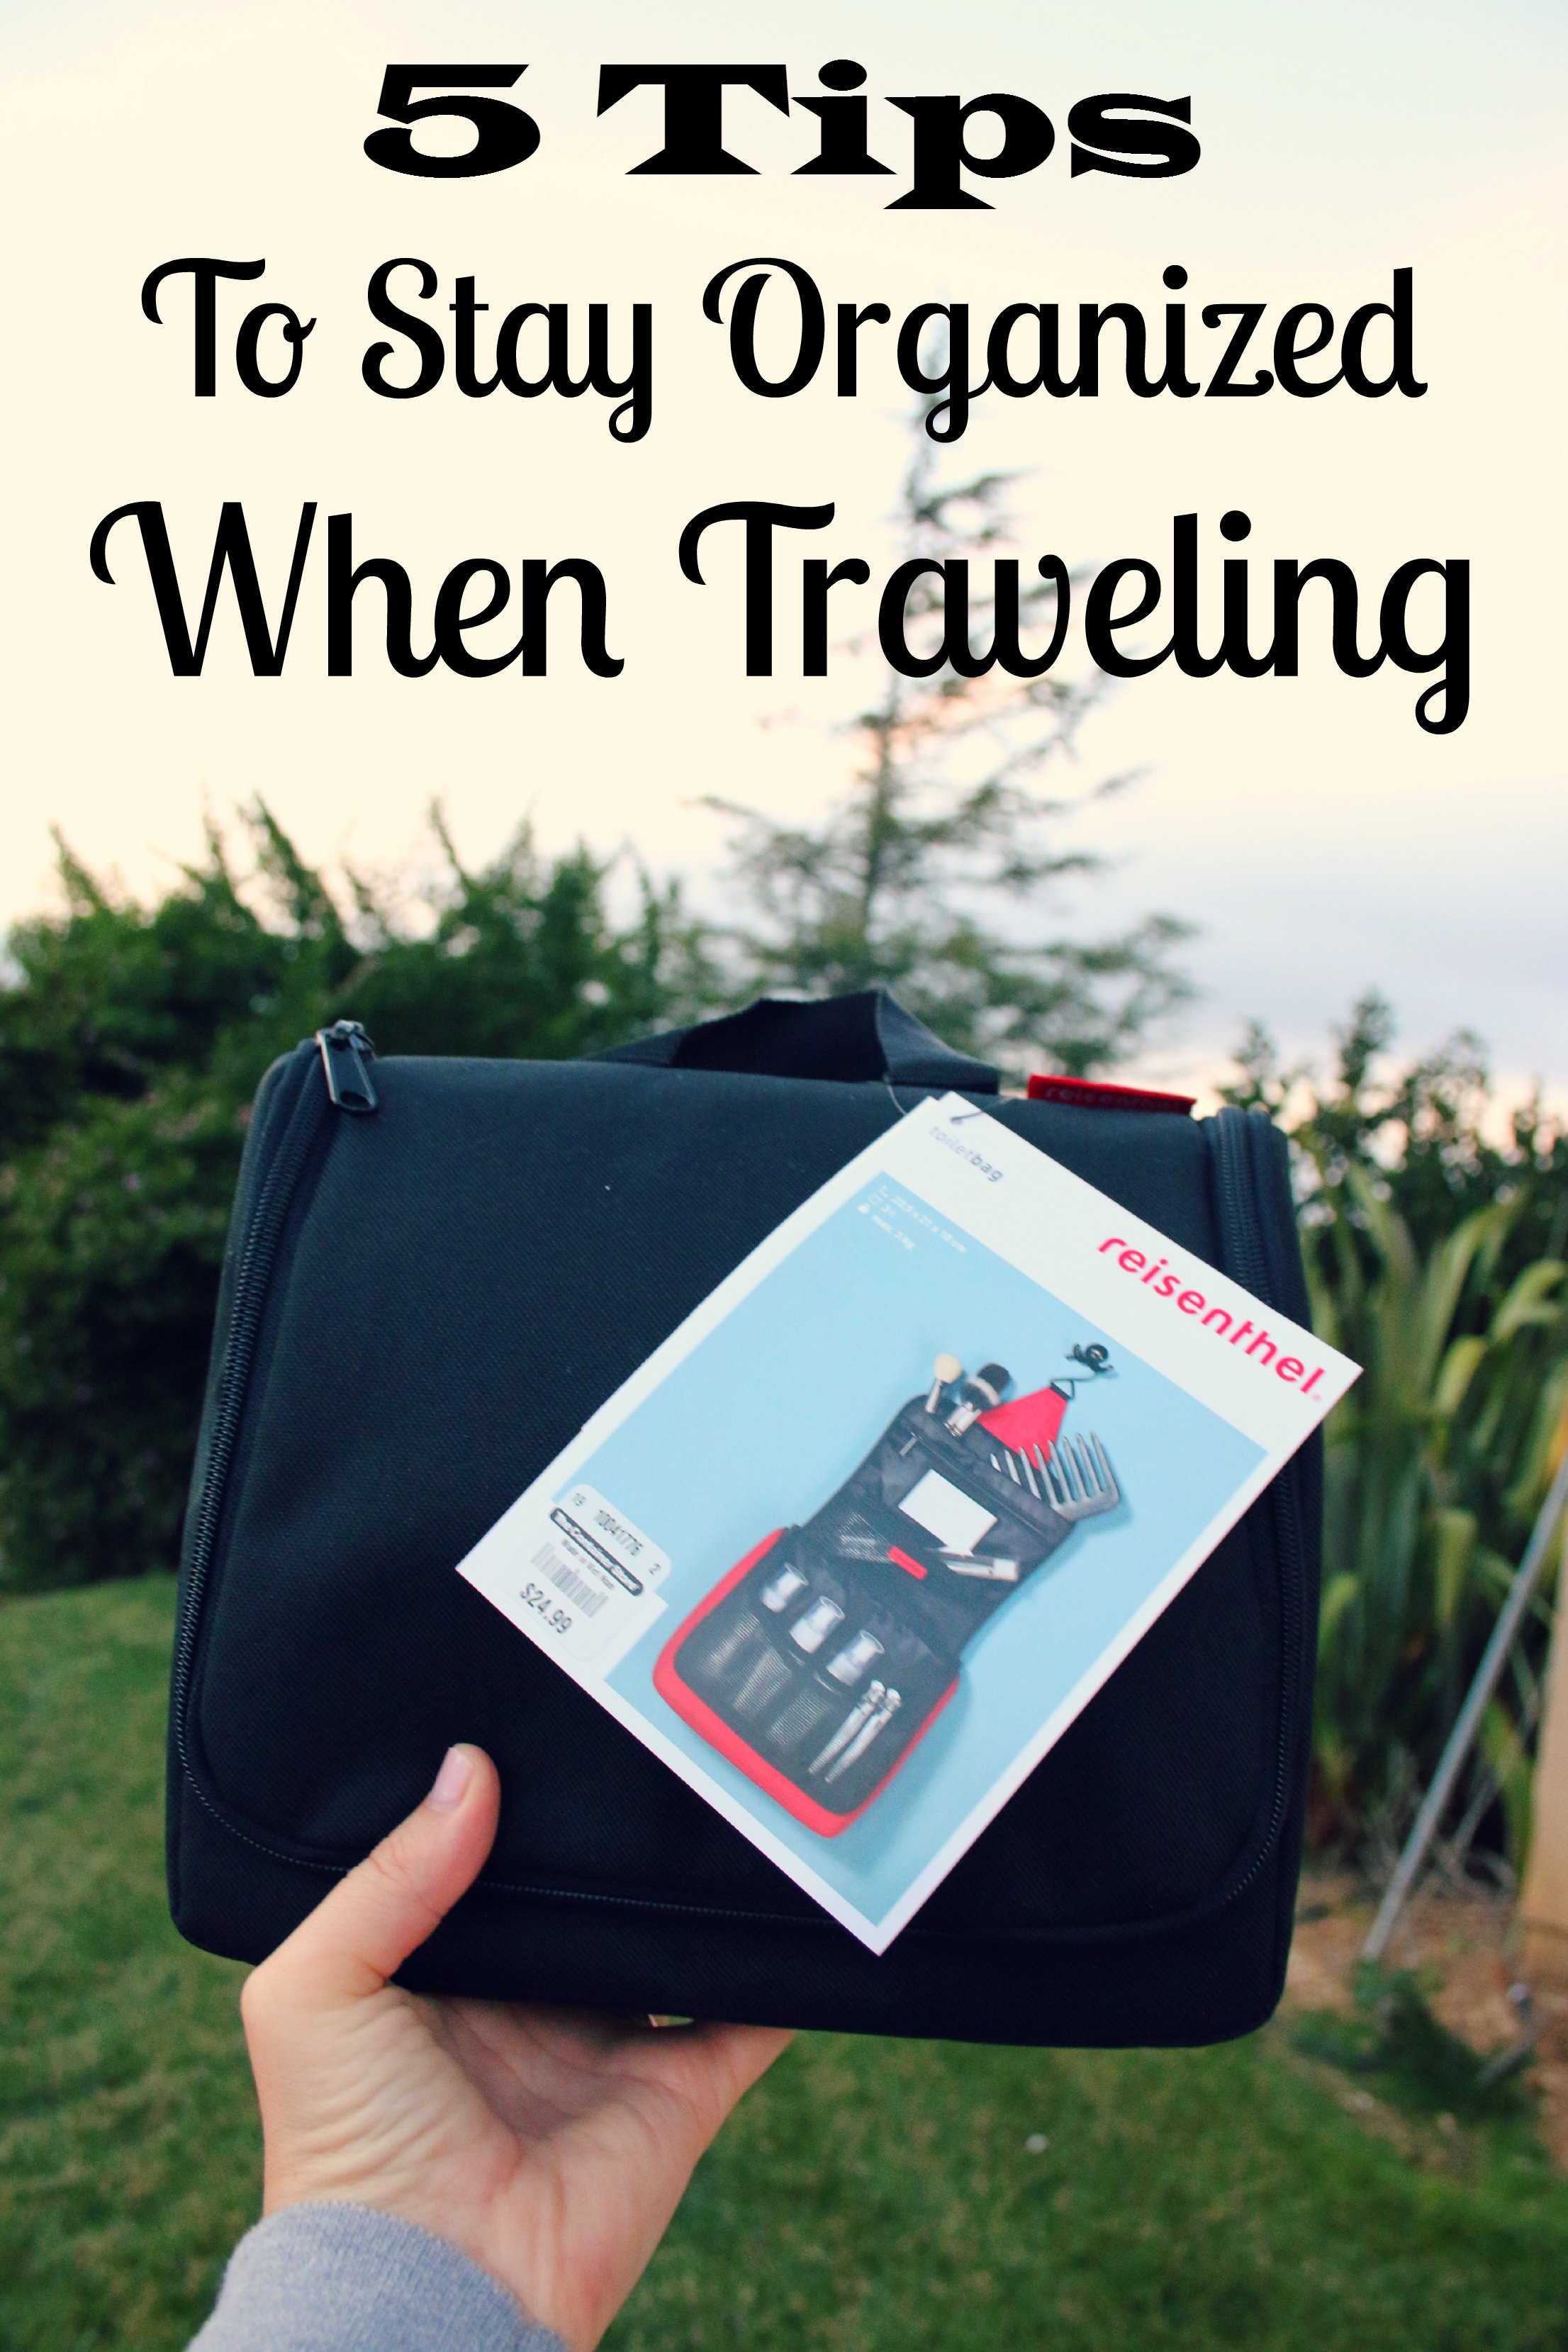 5 tips to stay organized when traveling